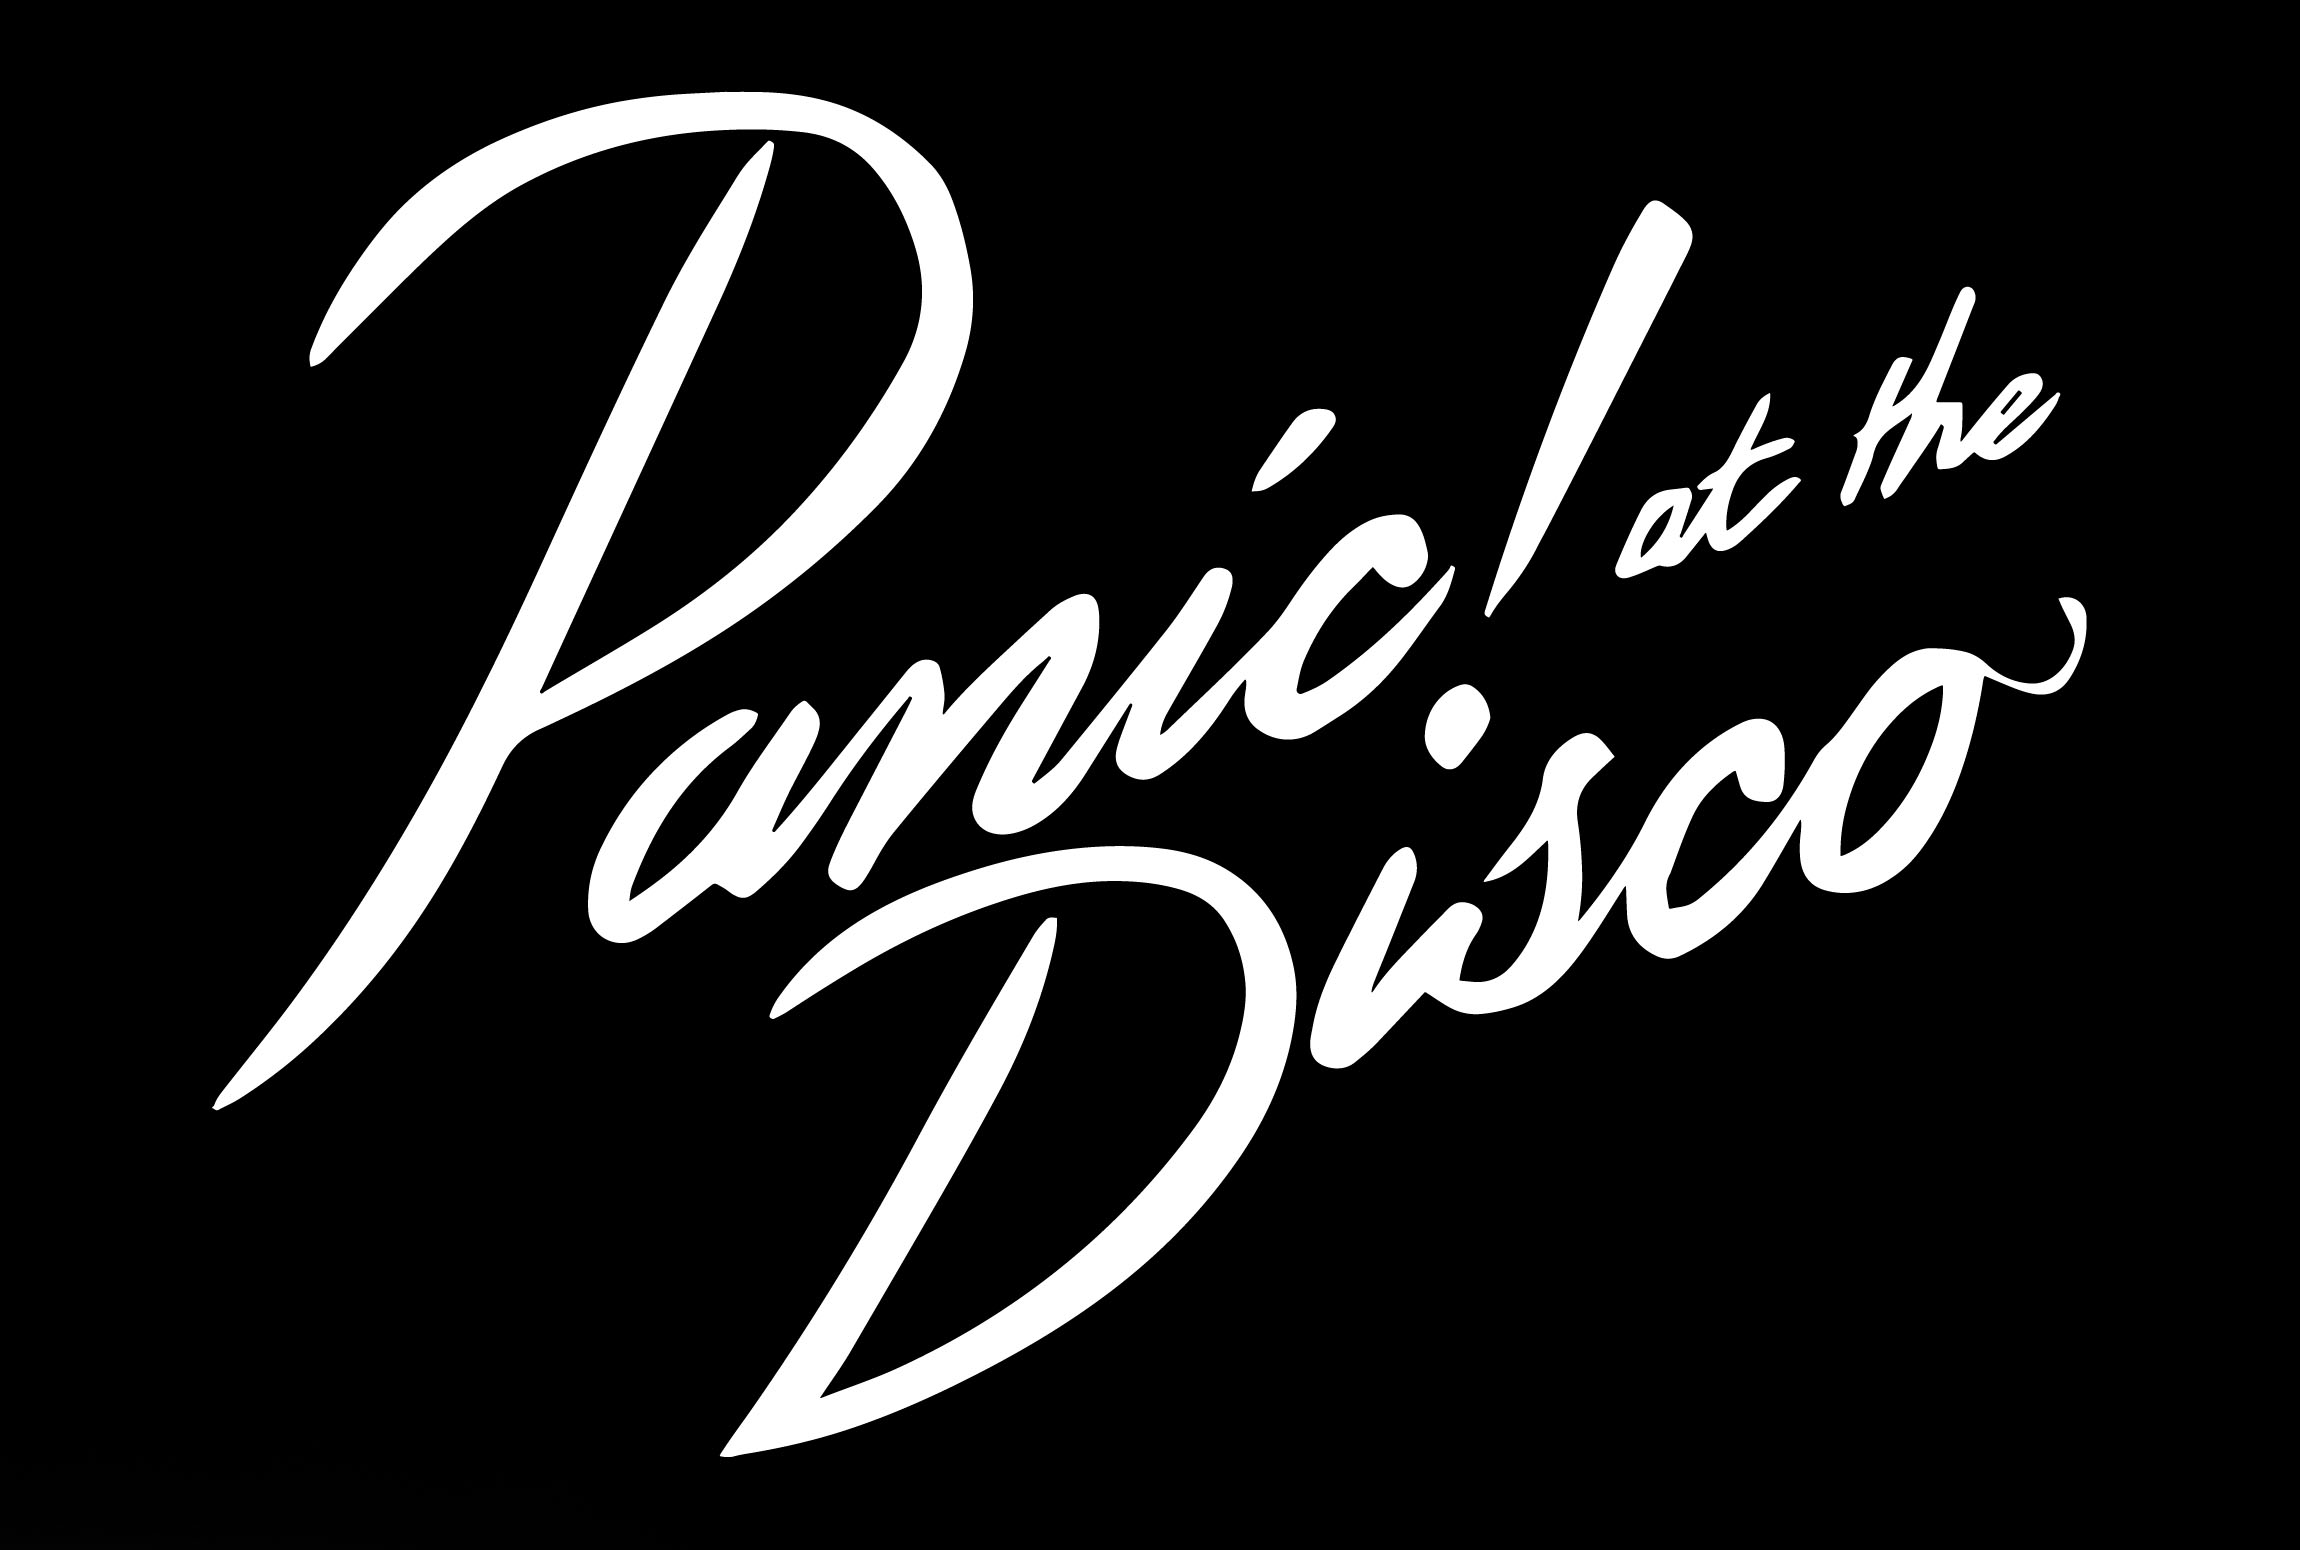 Panic at the disco logo panic at the disco symbol meaning history panic at the disco symbol biocorpaavc Images